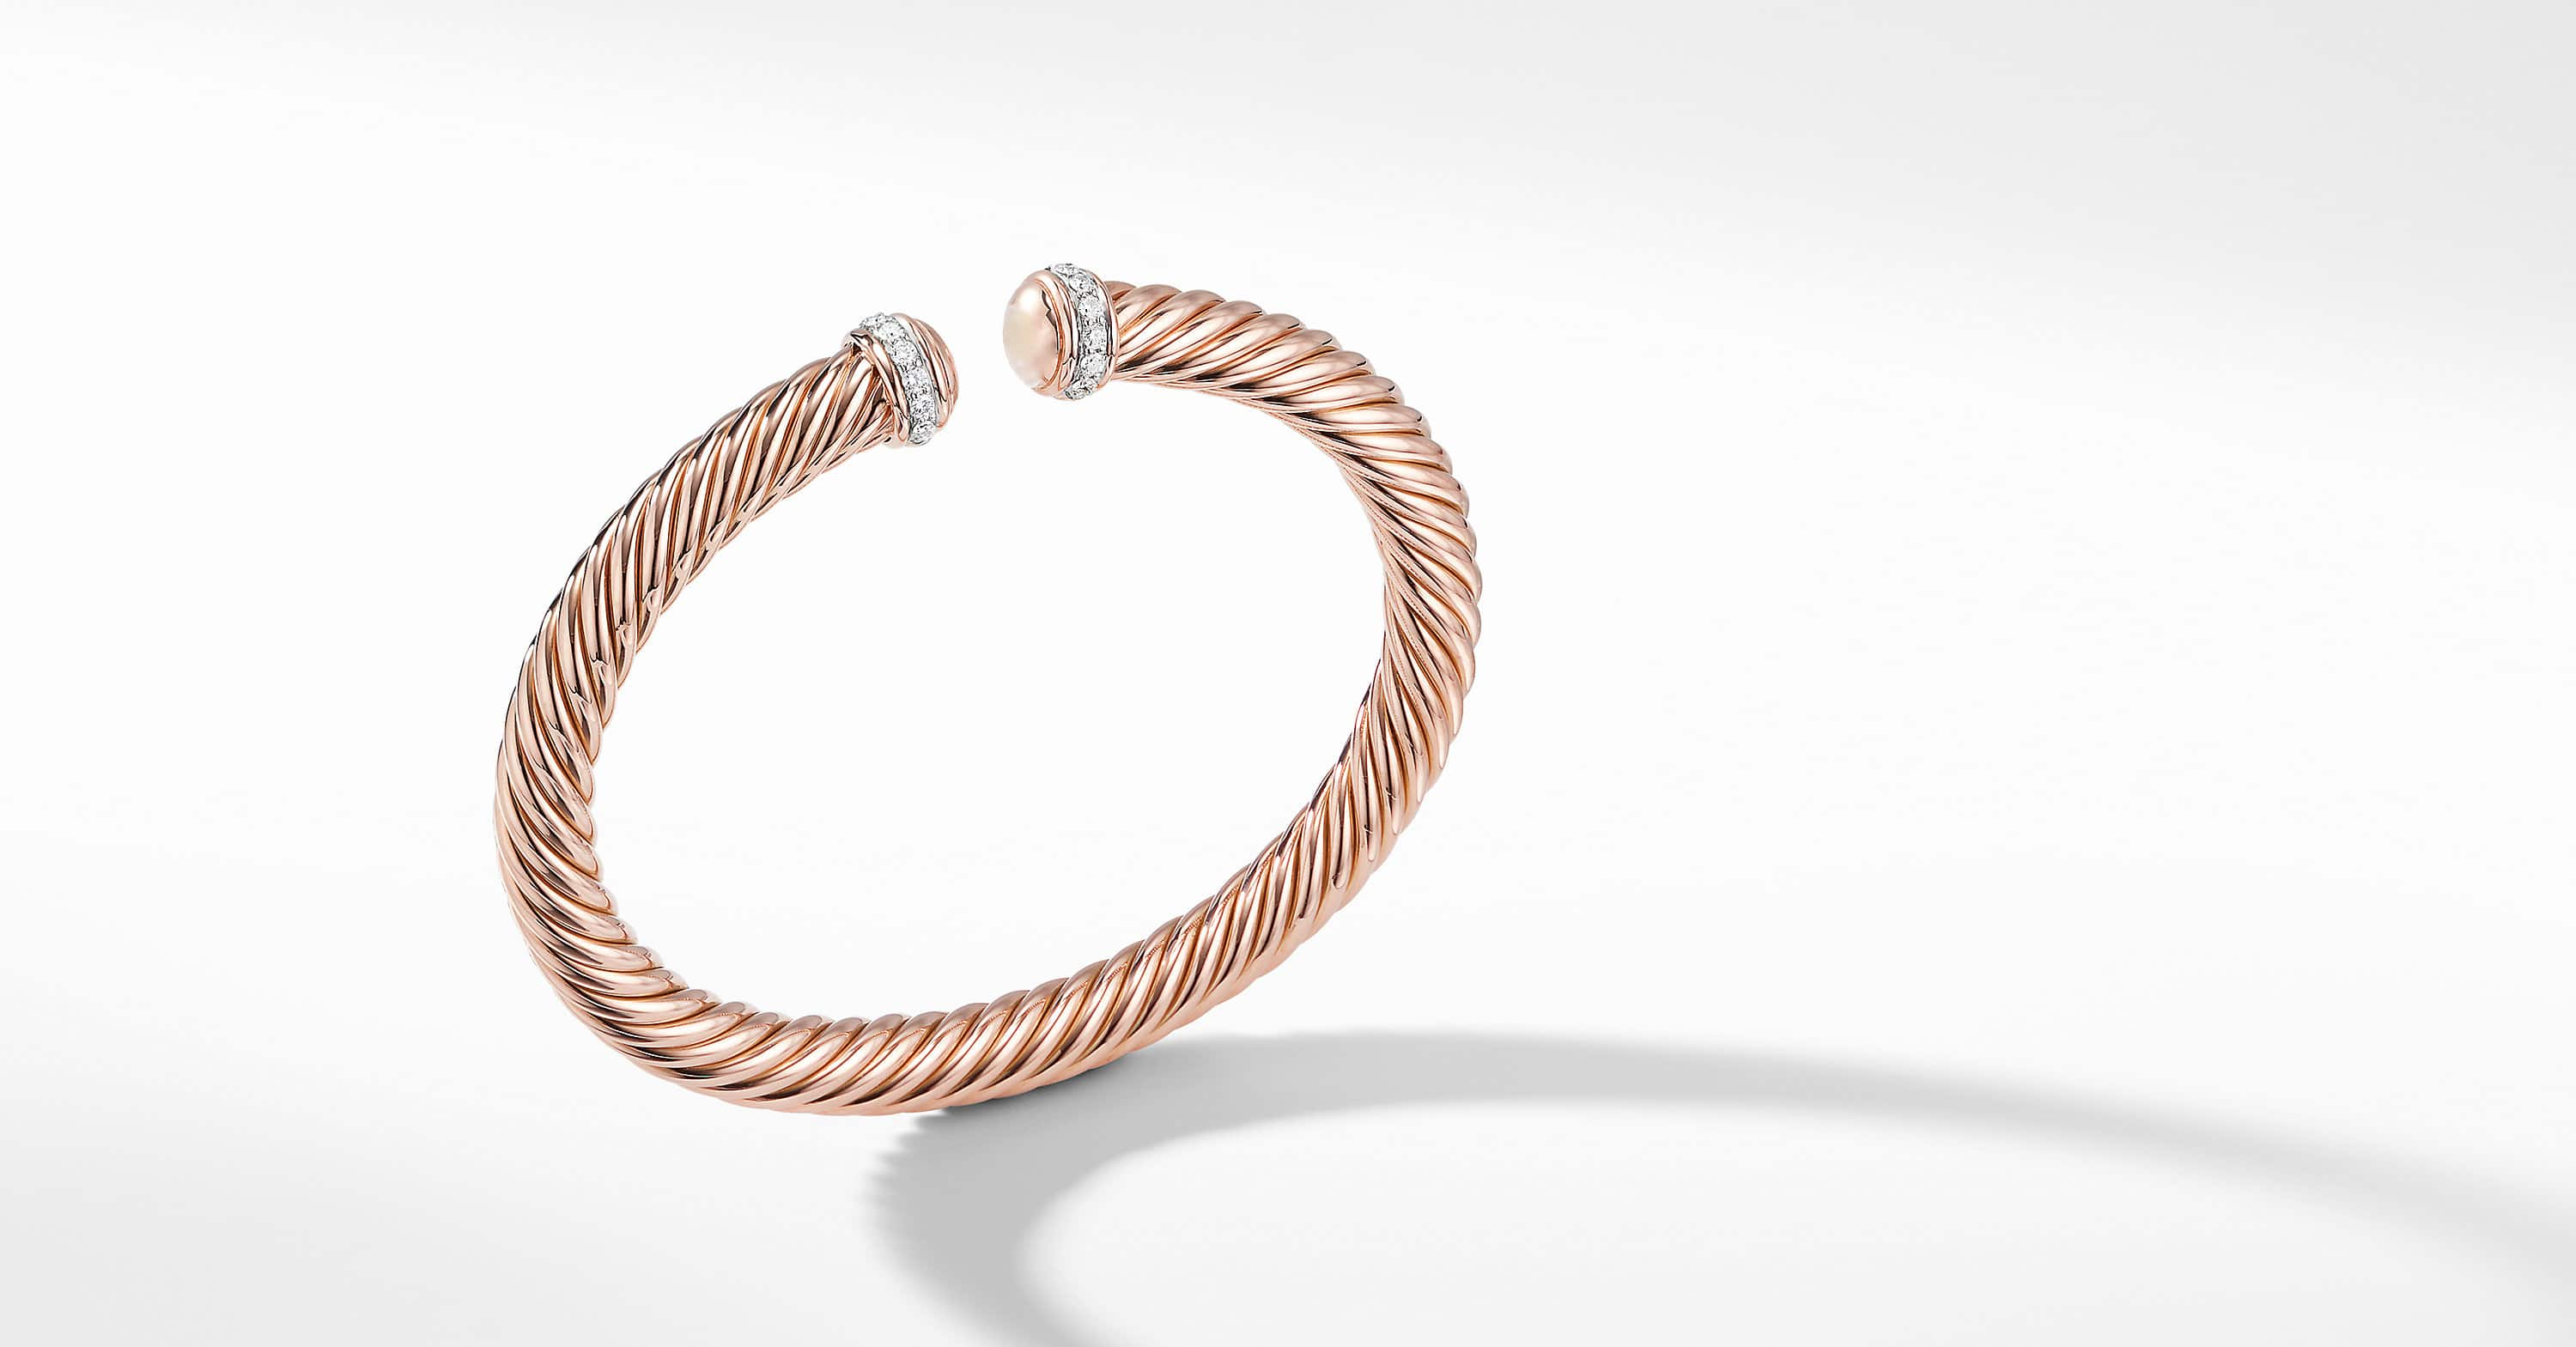 Cable Spira Bracelet with Diamonds in 18K Rose Gold, 7mm